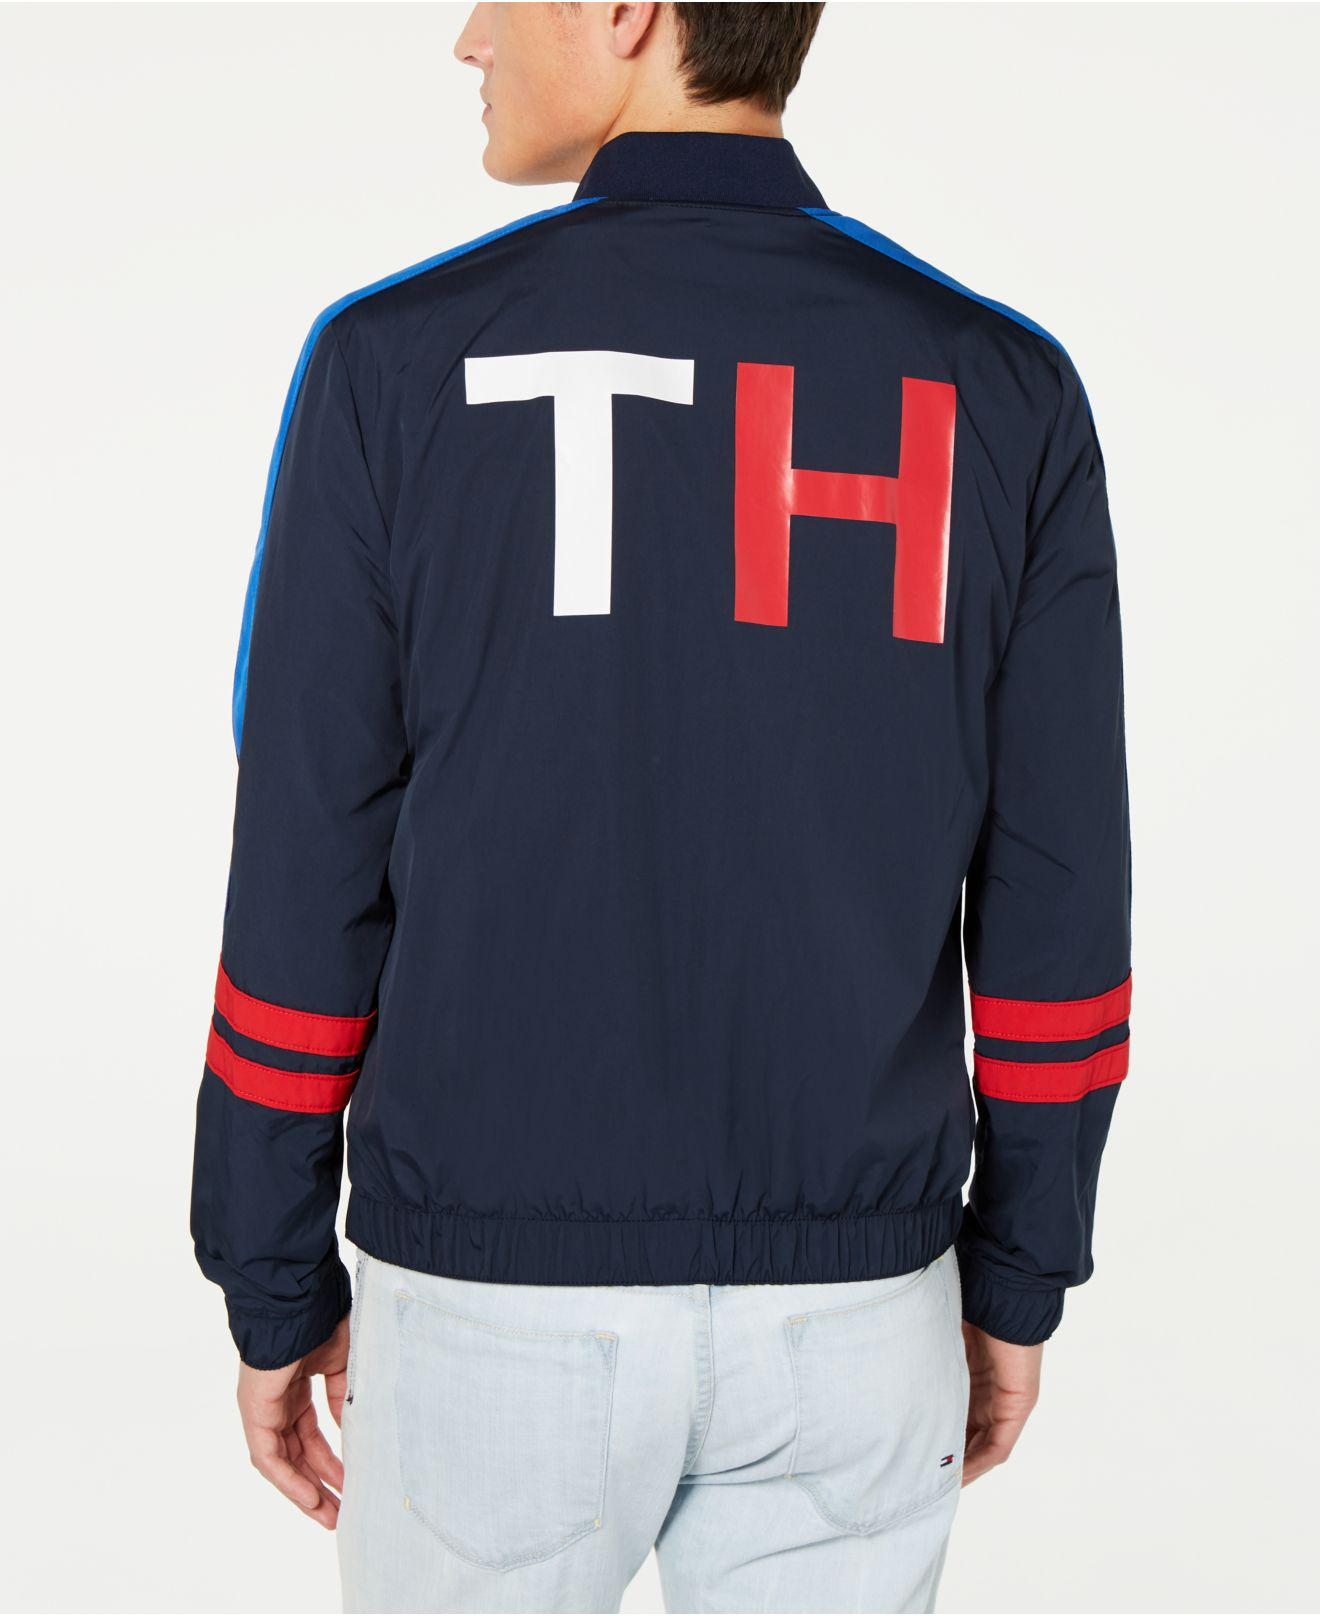 5e8fe84f7 Lyst - Tommy Hilfiger Coach Colorblocked Track Jacket in Blue for Men